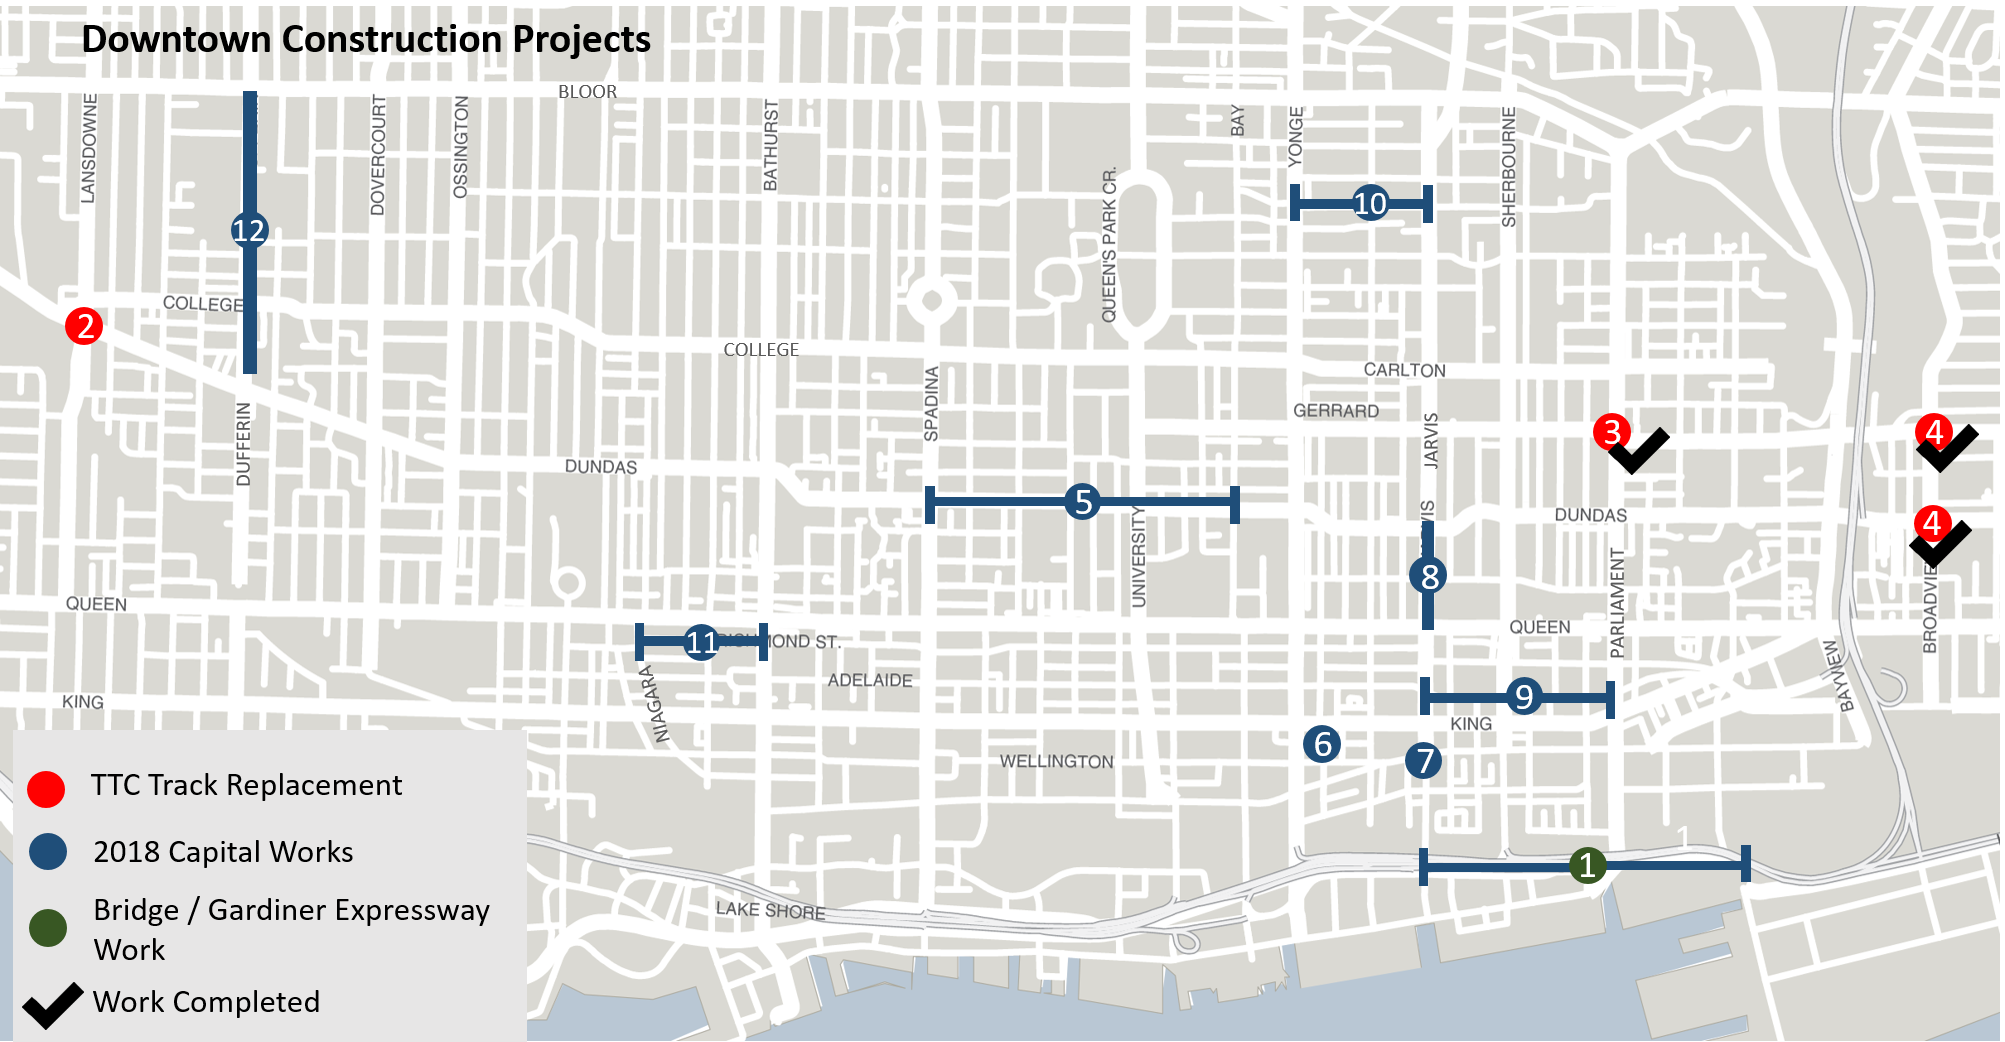 This shows the construction projects happening in Ward 27 and Ward 28 - in central downtown Toronto. There are 12 different projects happening.